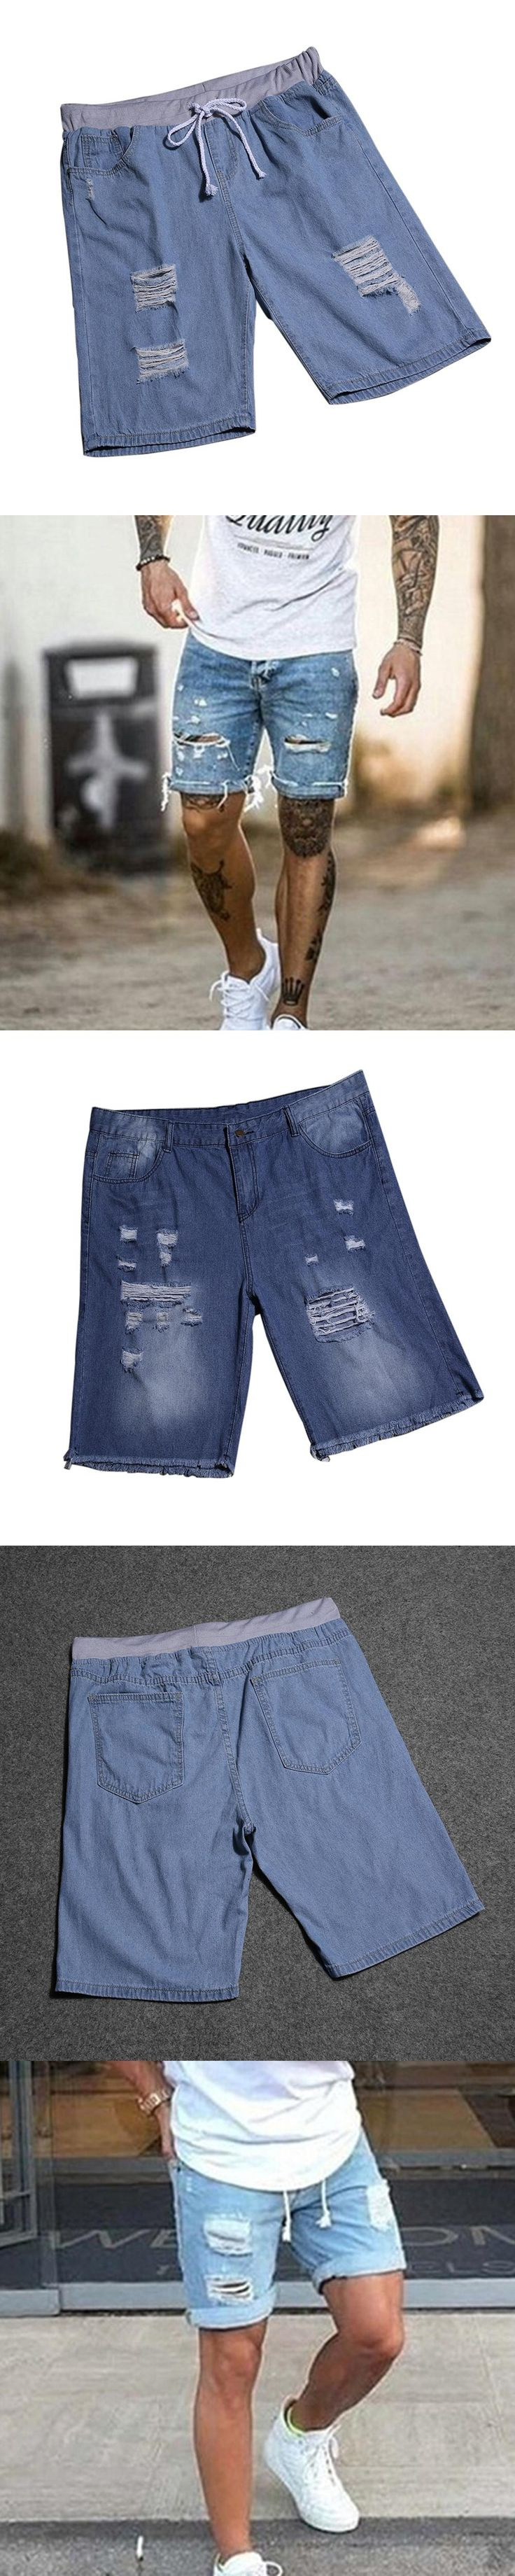 Summer Men Short Jeans Fashion Drawstring Denim Pants Ripped Shorts Plus Size